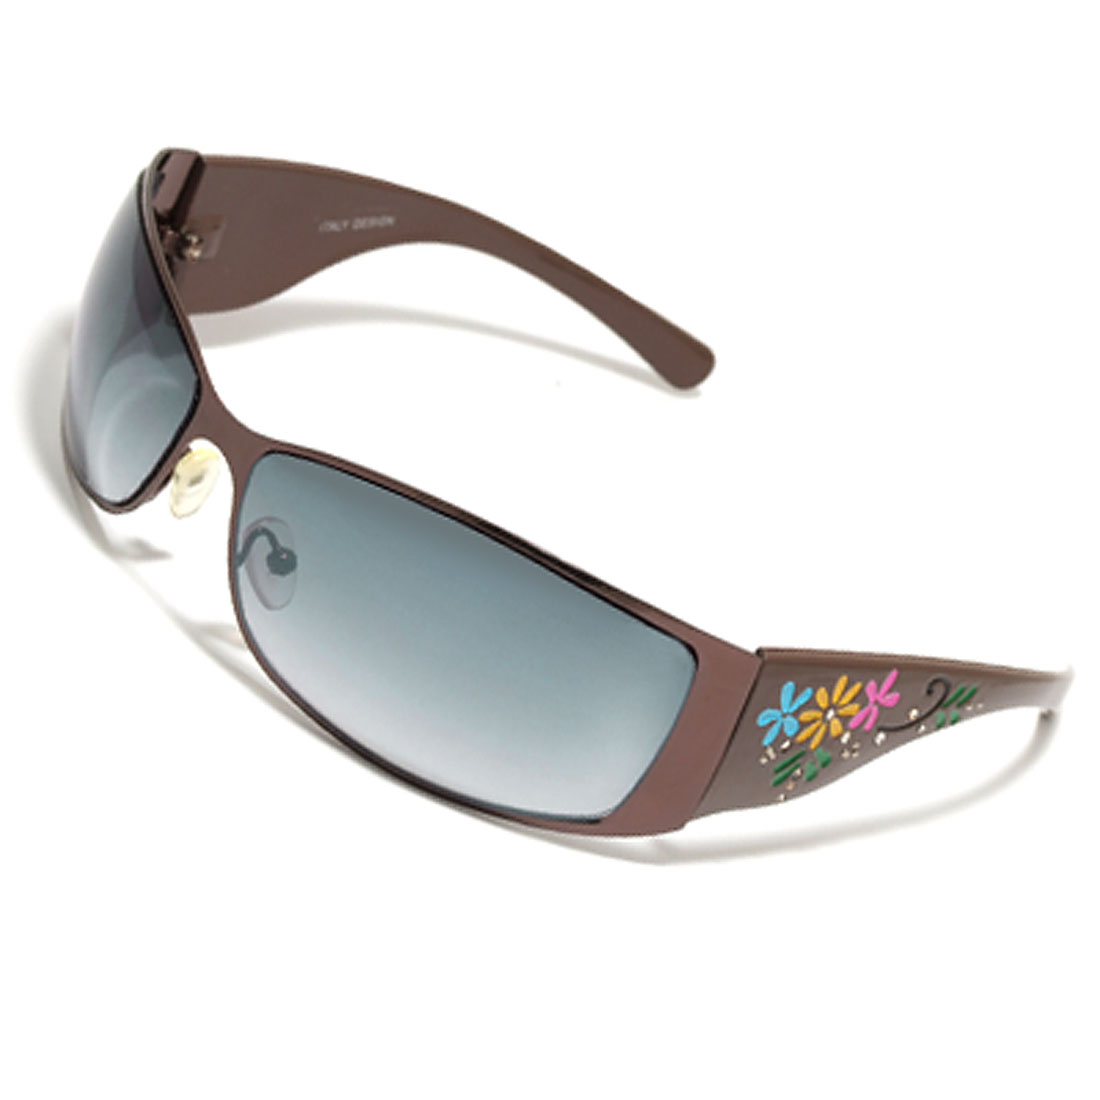 Flower Decorate Arms Fashion Ladies' Eyewear Sunglasses